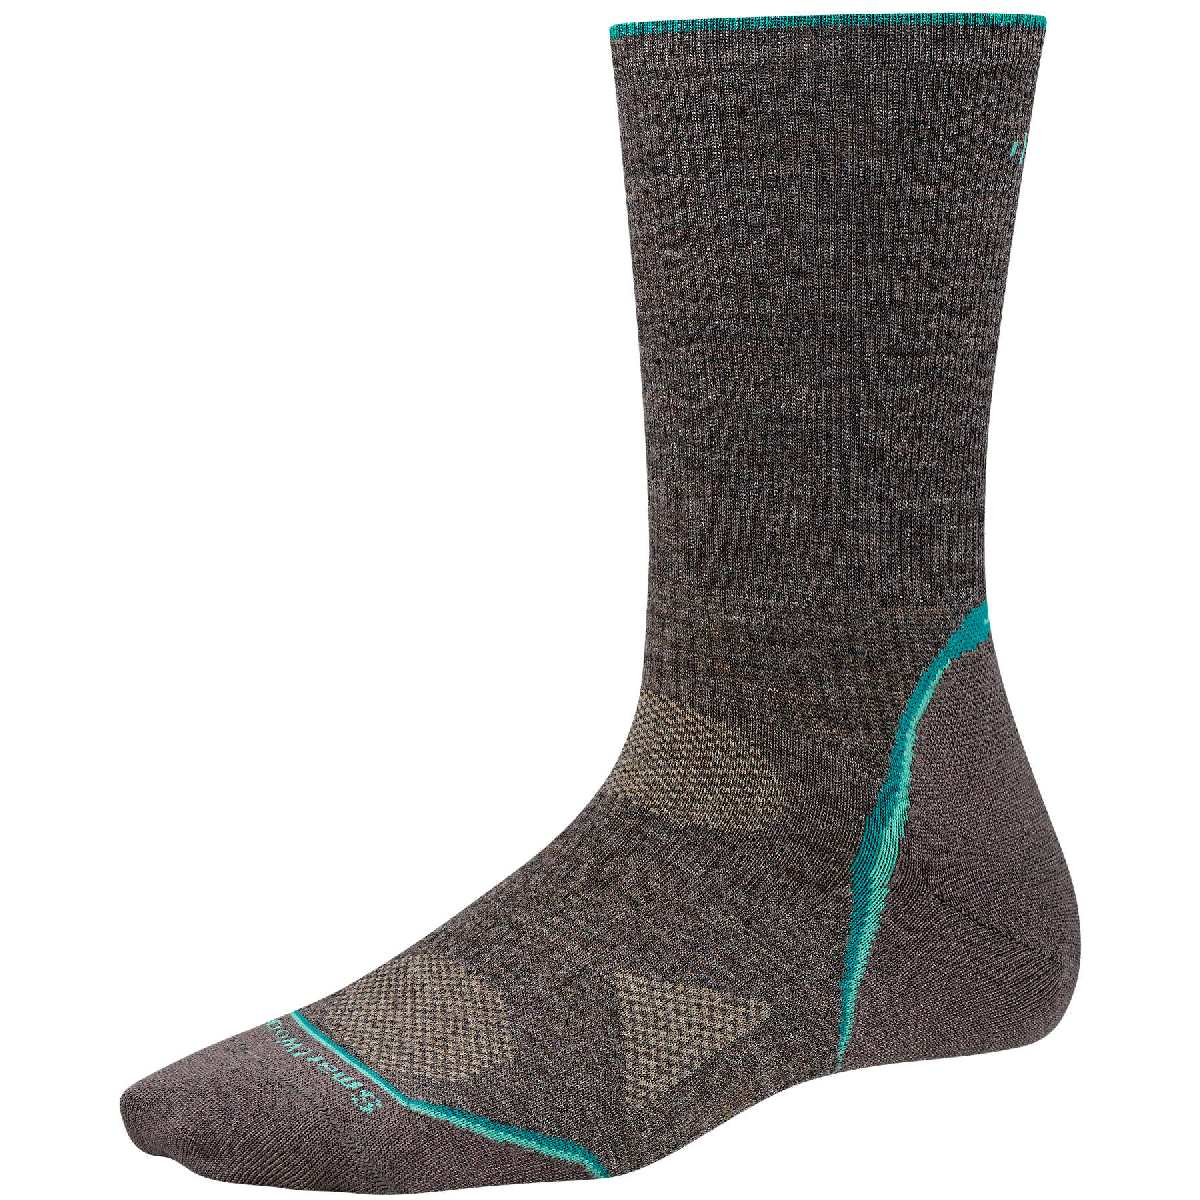 SmartWool PhD Outdoor Ultra Light Crew Hiking Sock Women's Size S Taupe U.S.A. & Canada